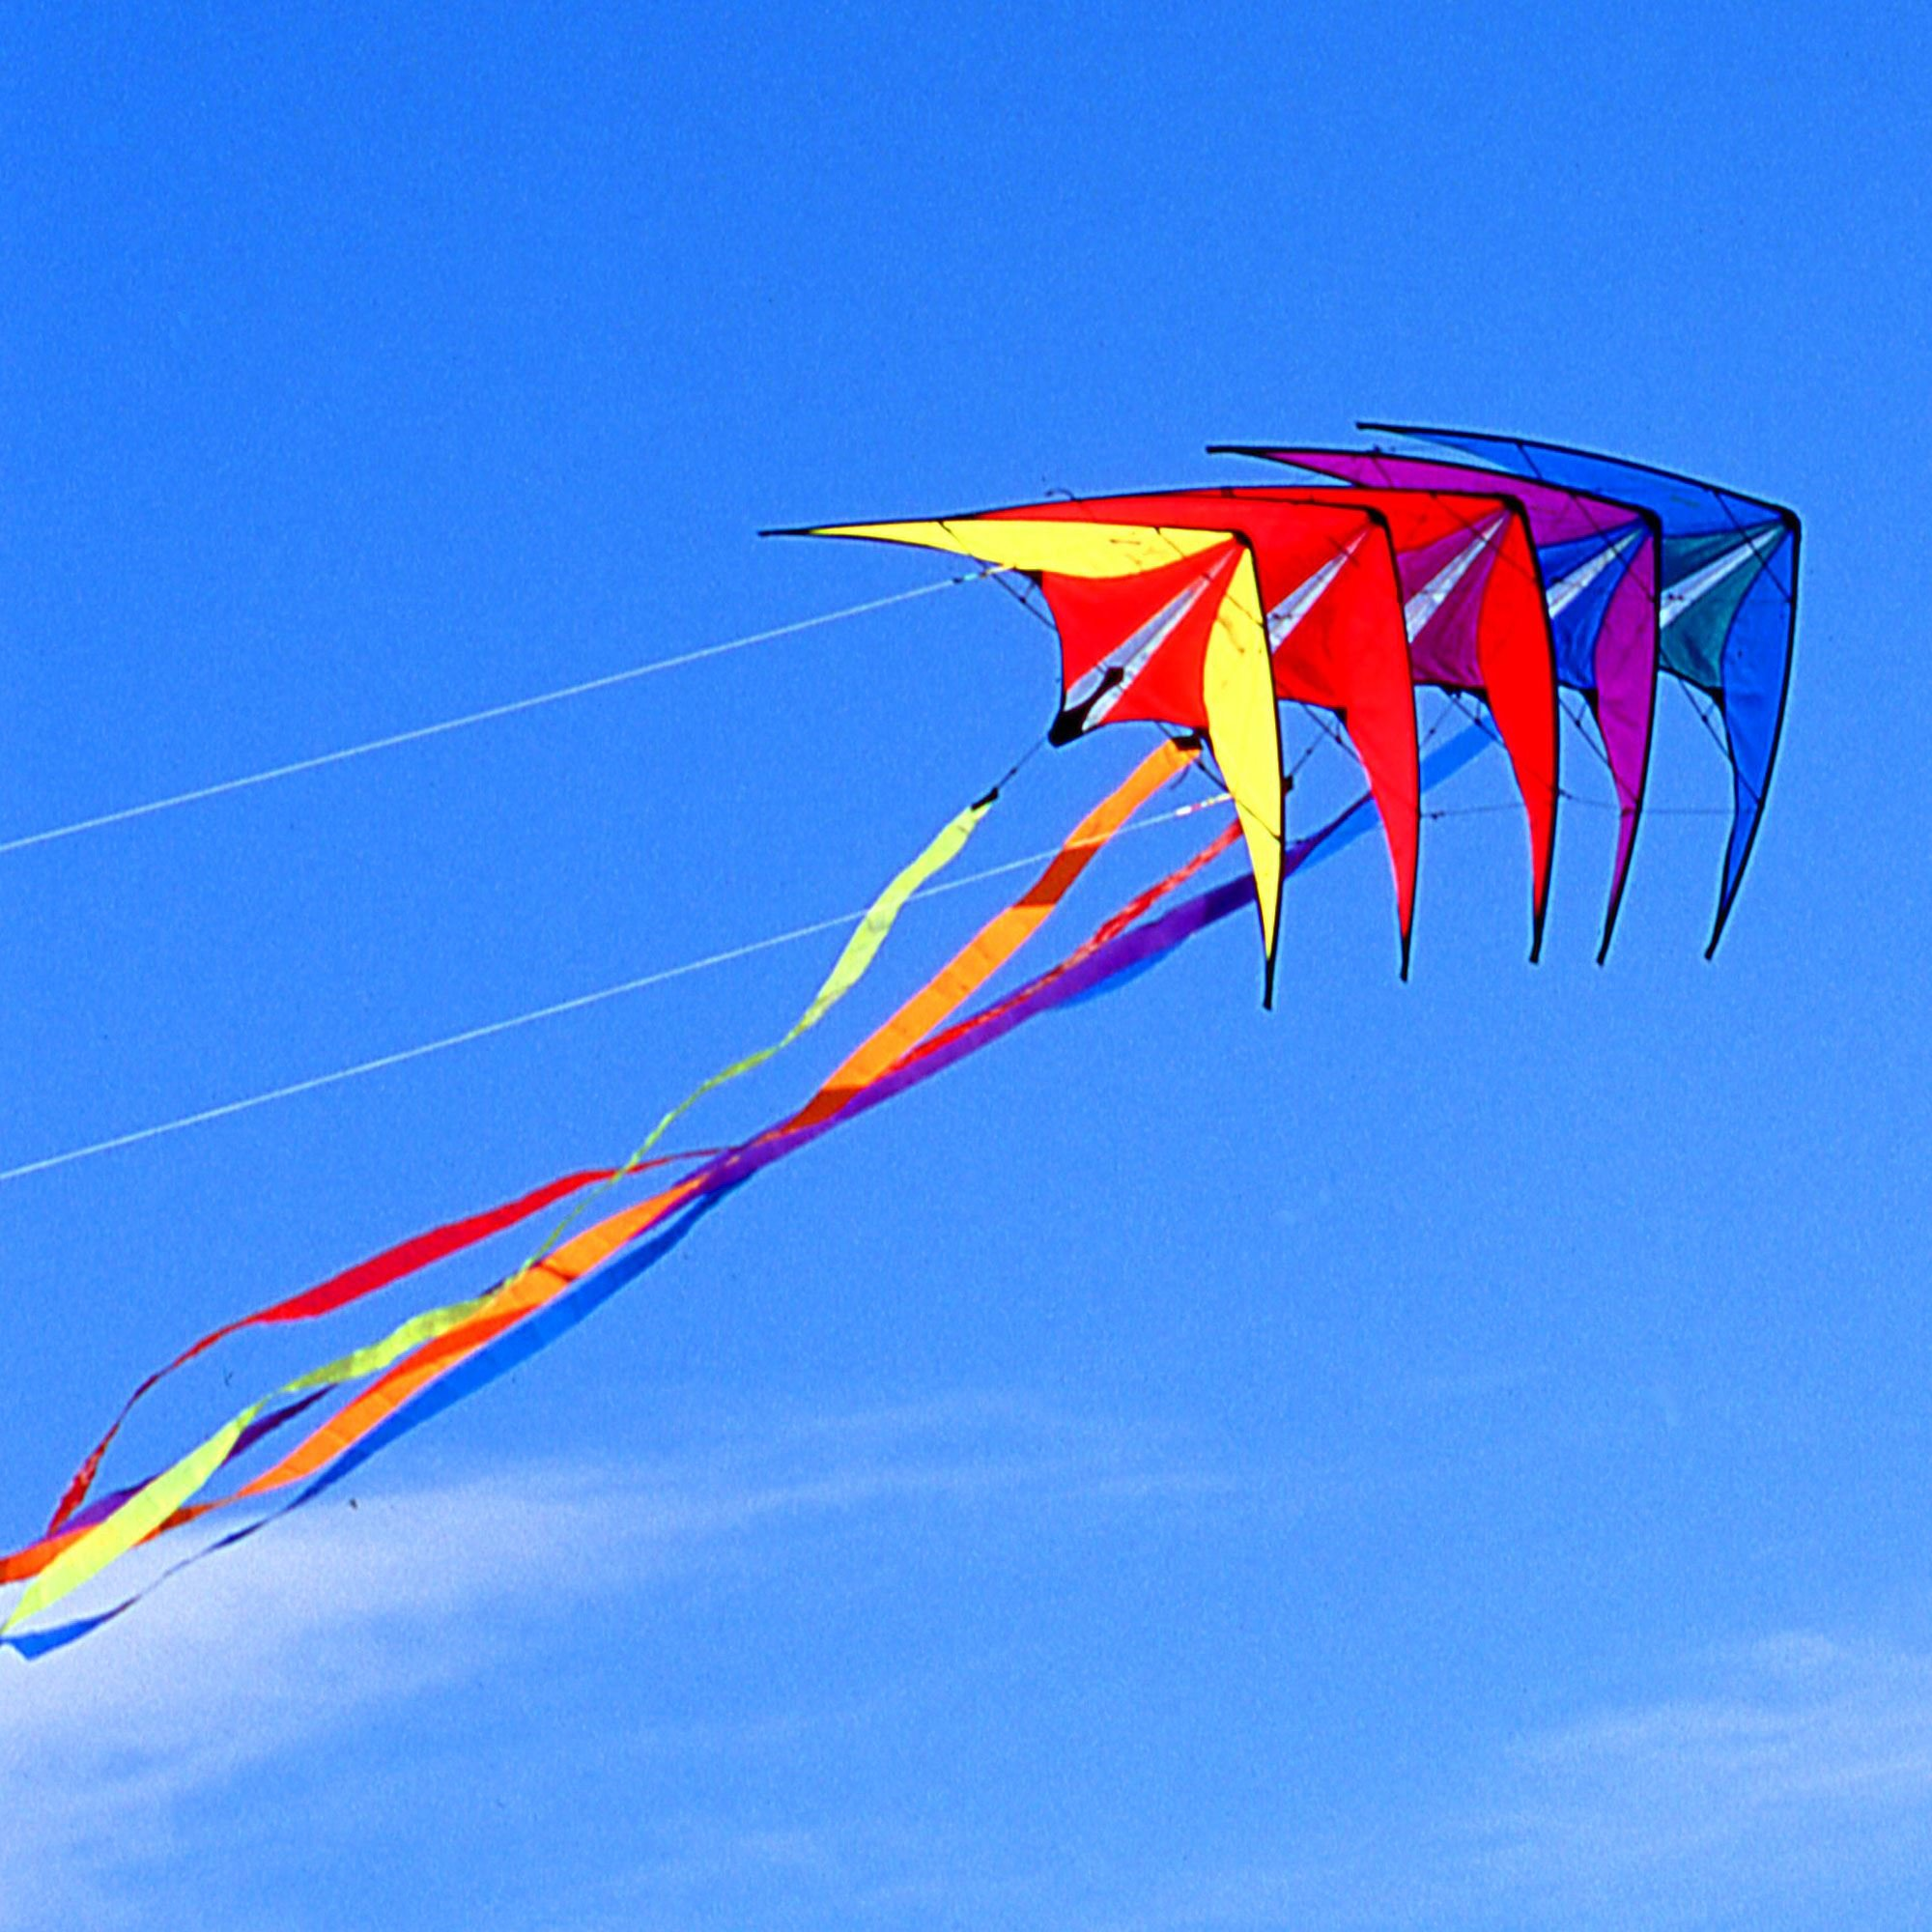 Prism Micron 5-Stack Kite by Prism Designs